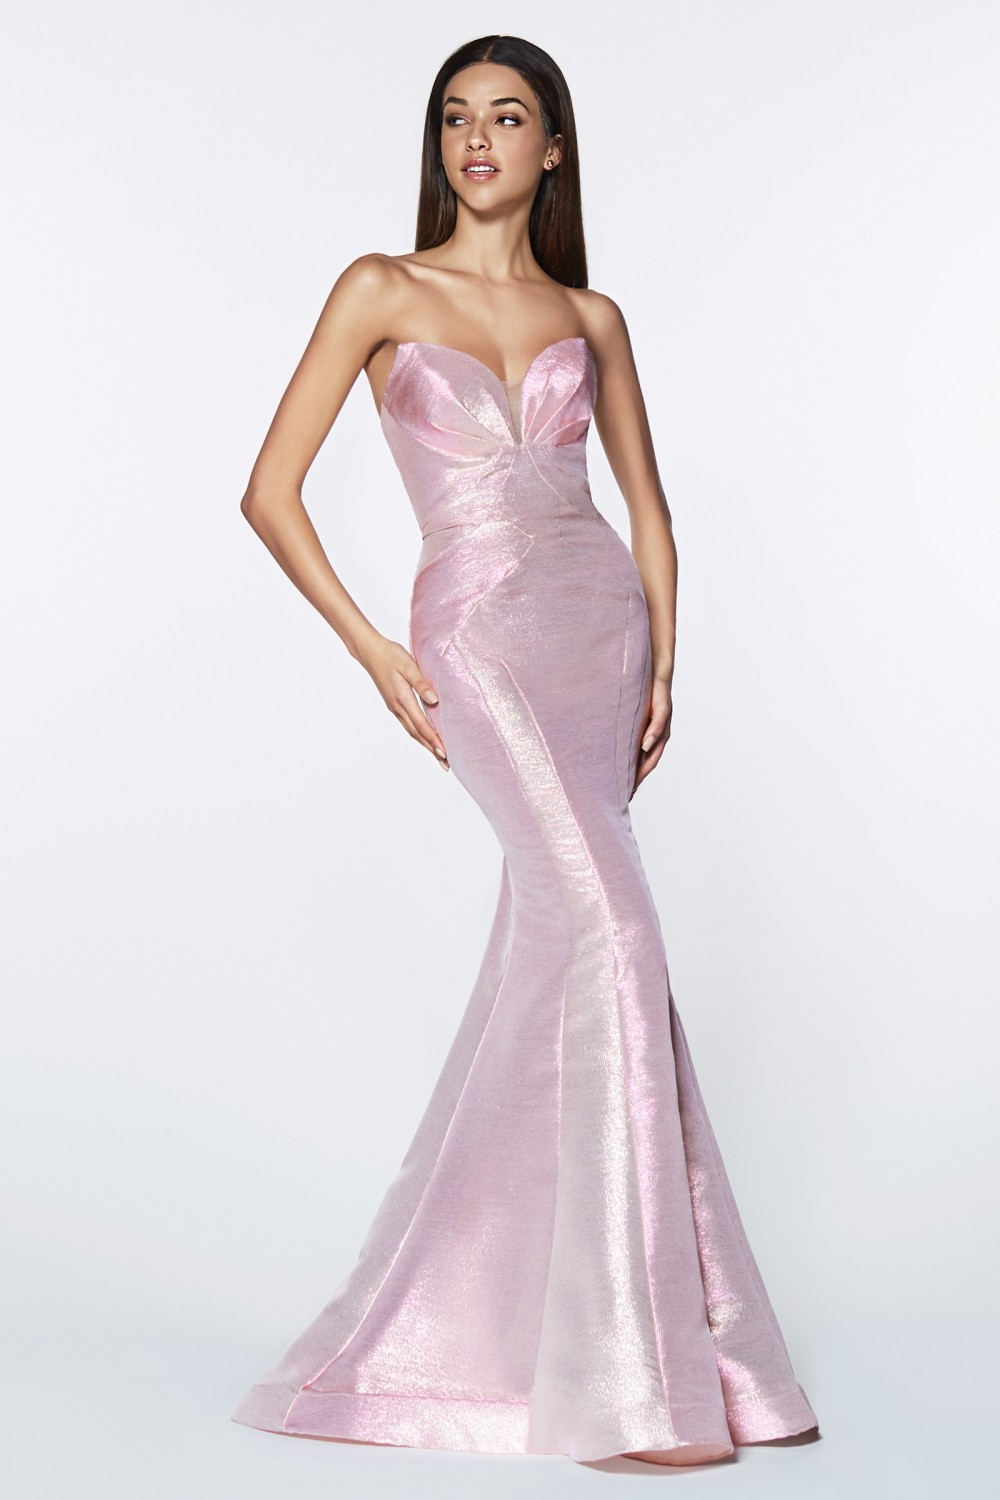 Opal Pink fitted strapless gown with metallic iridescent fabric.